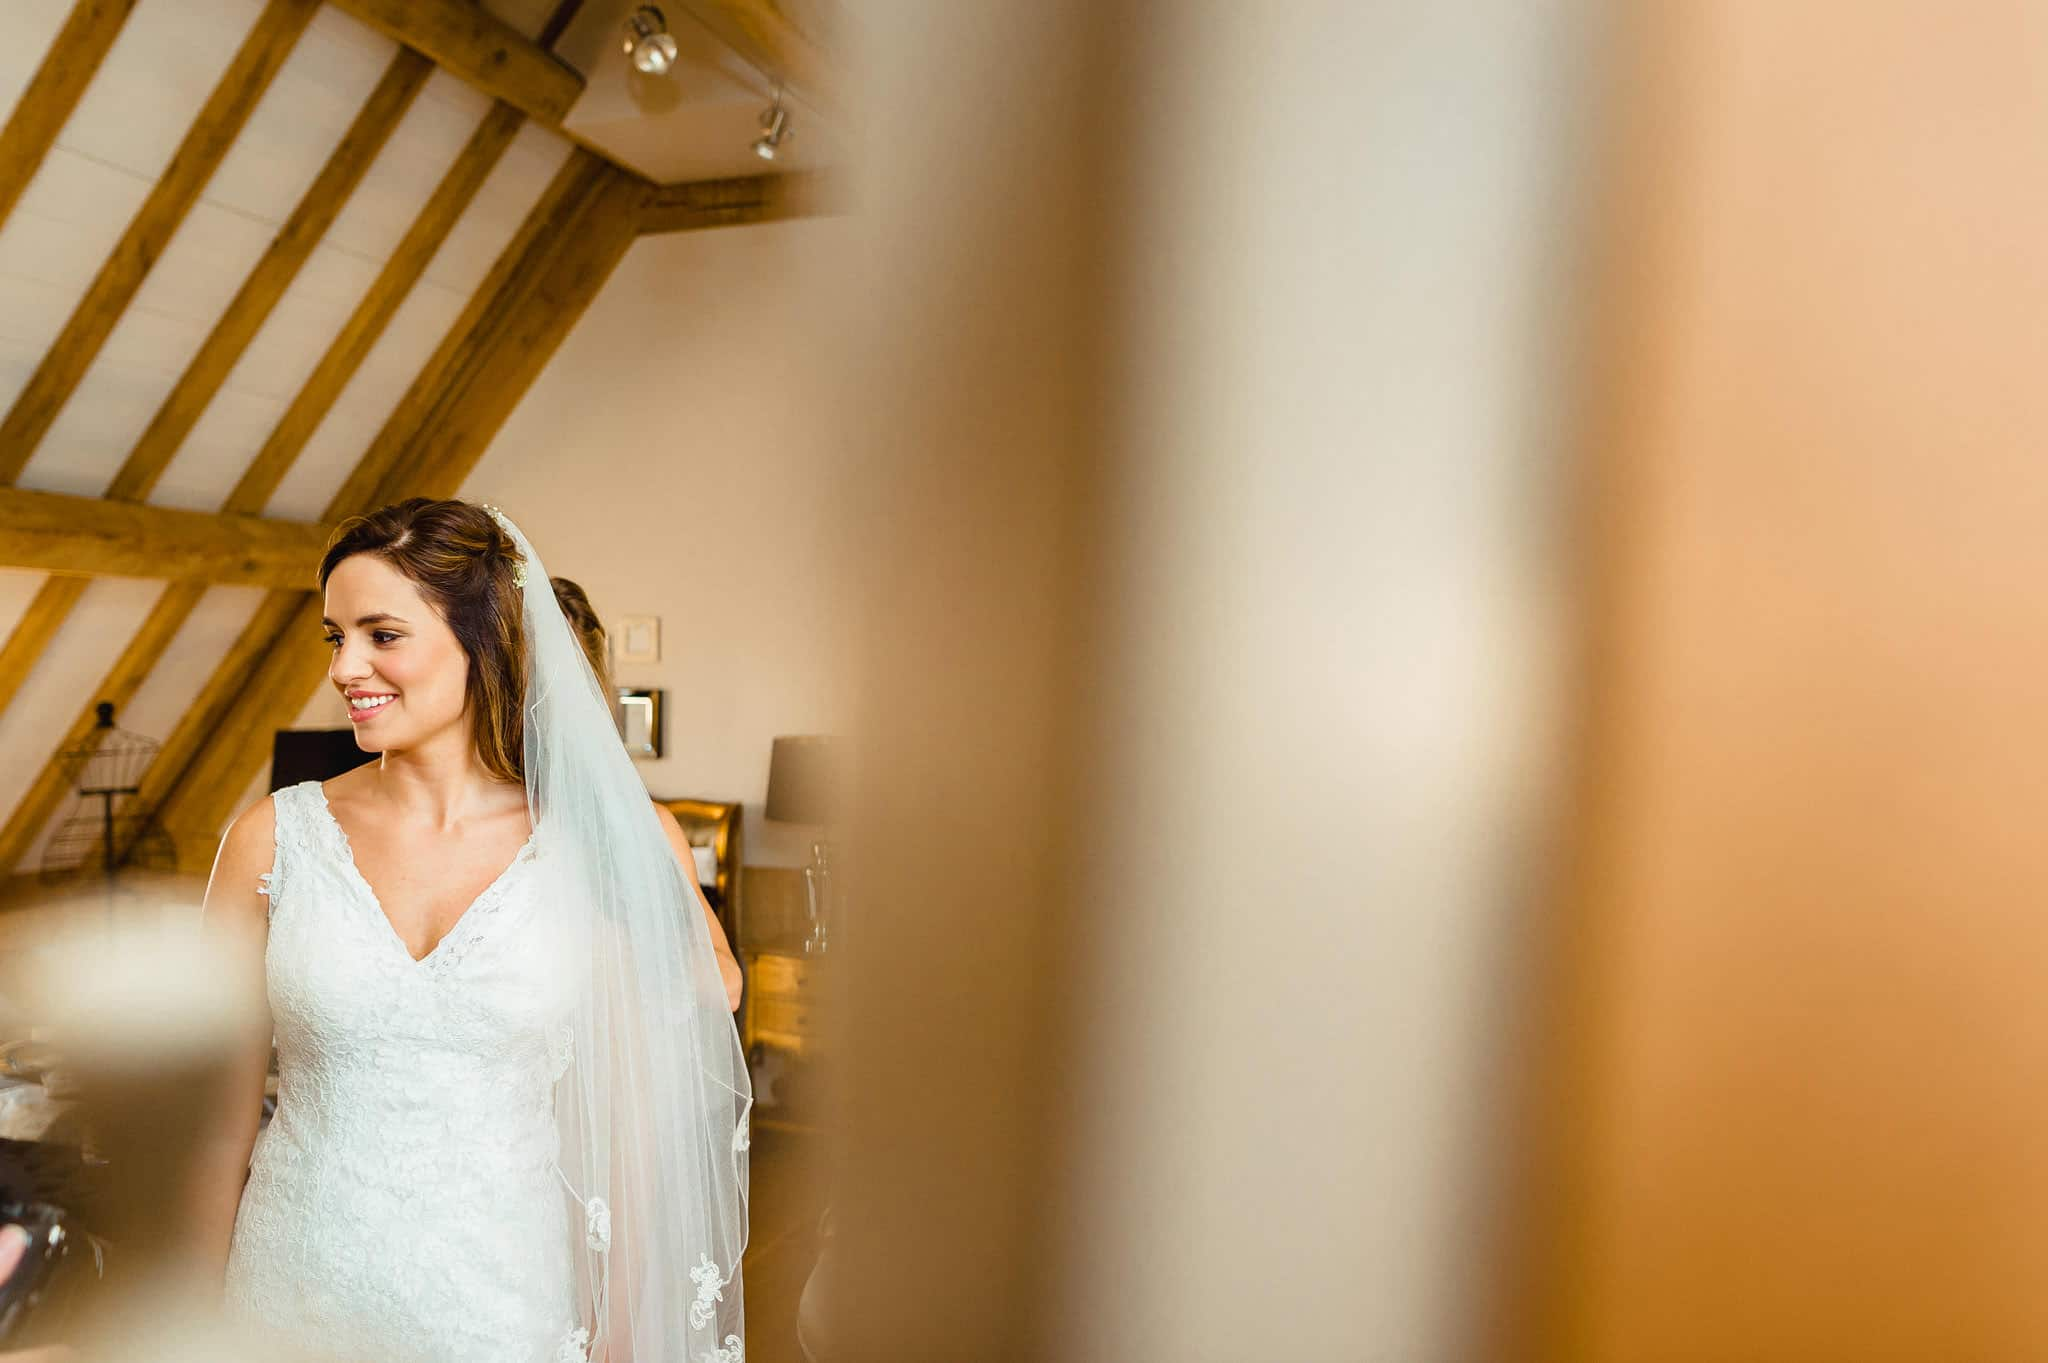 wedding at redhouse barn 42 - Wedding at Redhouse Barn in Stoke Prior, Worcestershire